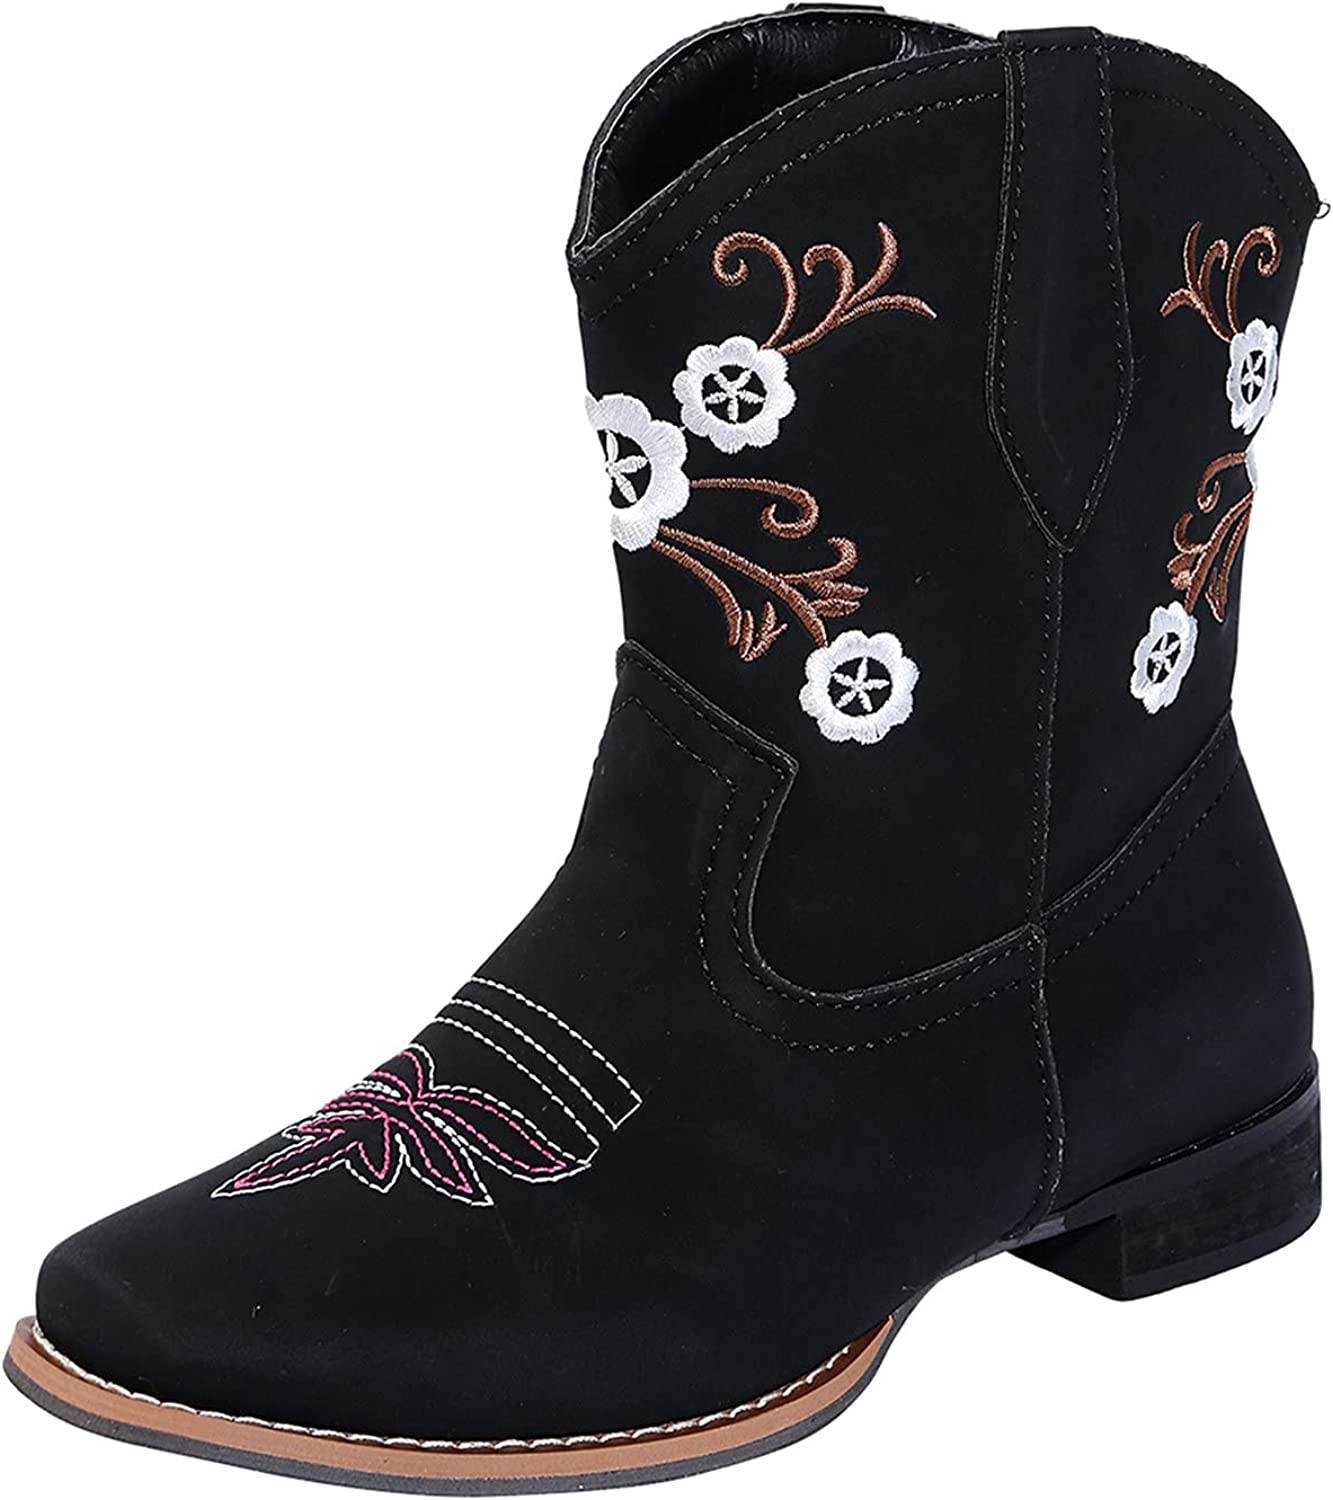 Women's Ankle Boots Retro Flower Embroidered Pointed Toe Block Chunky Mid Heel Western Boots